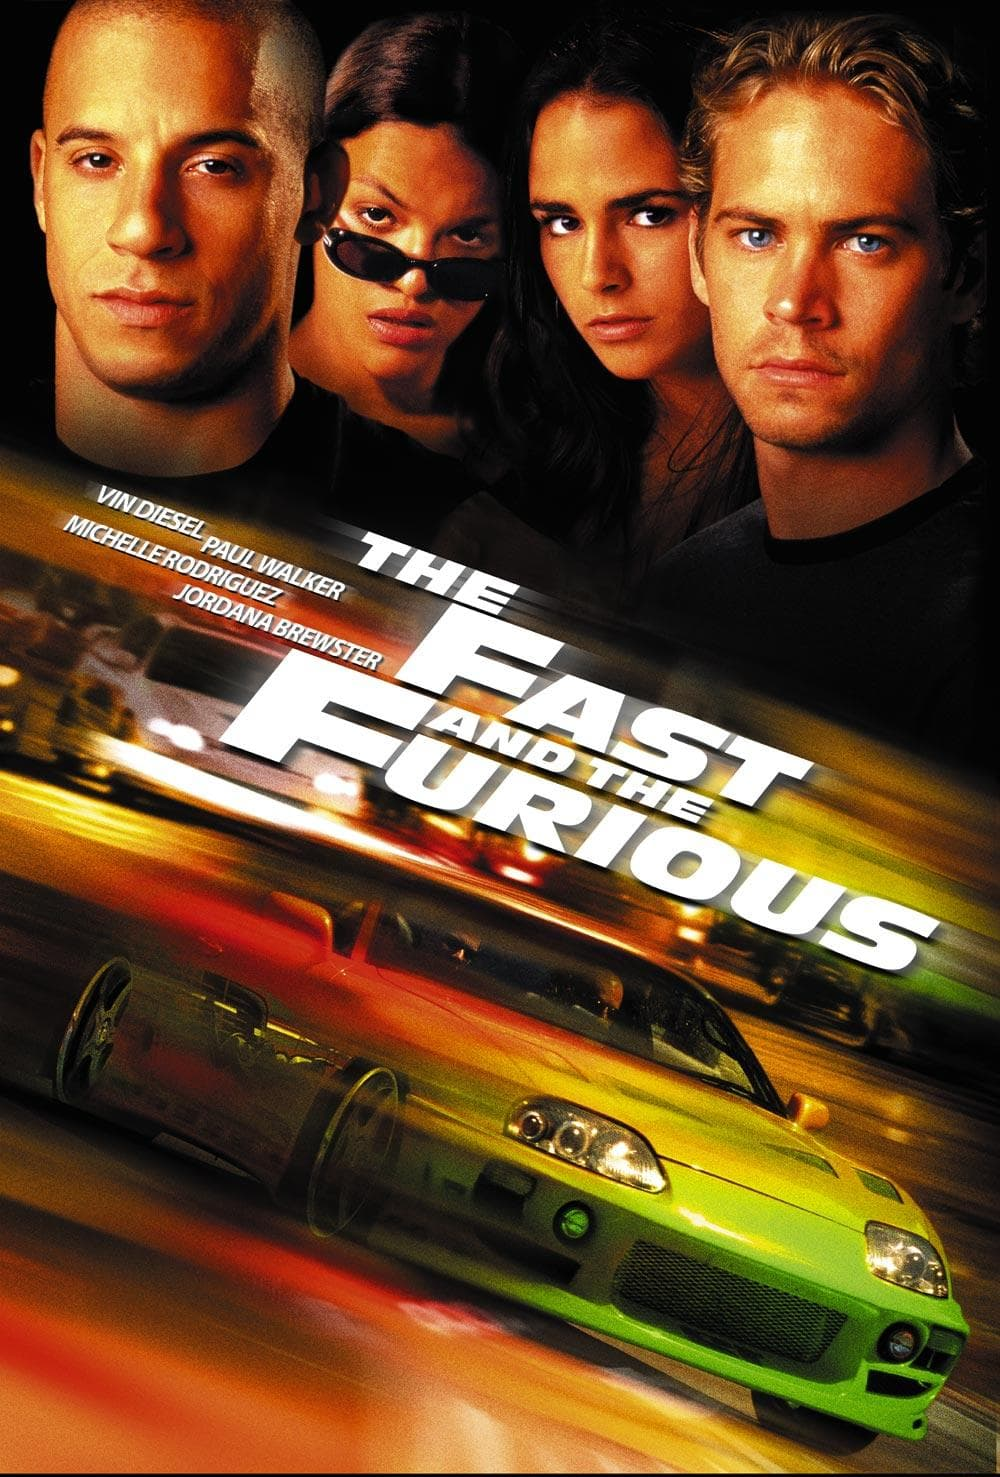 Random 'Fast and Furious' Movies